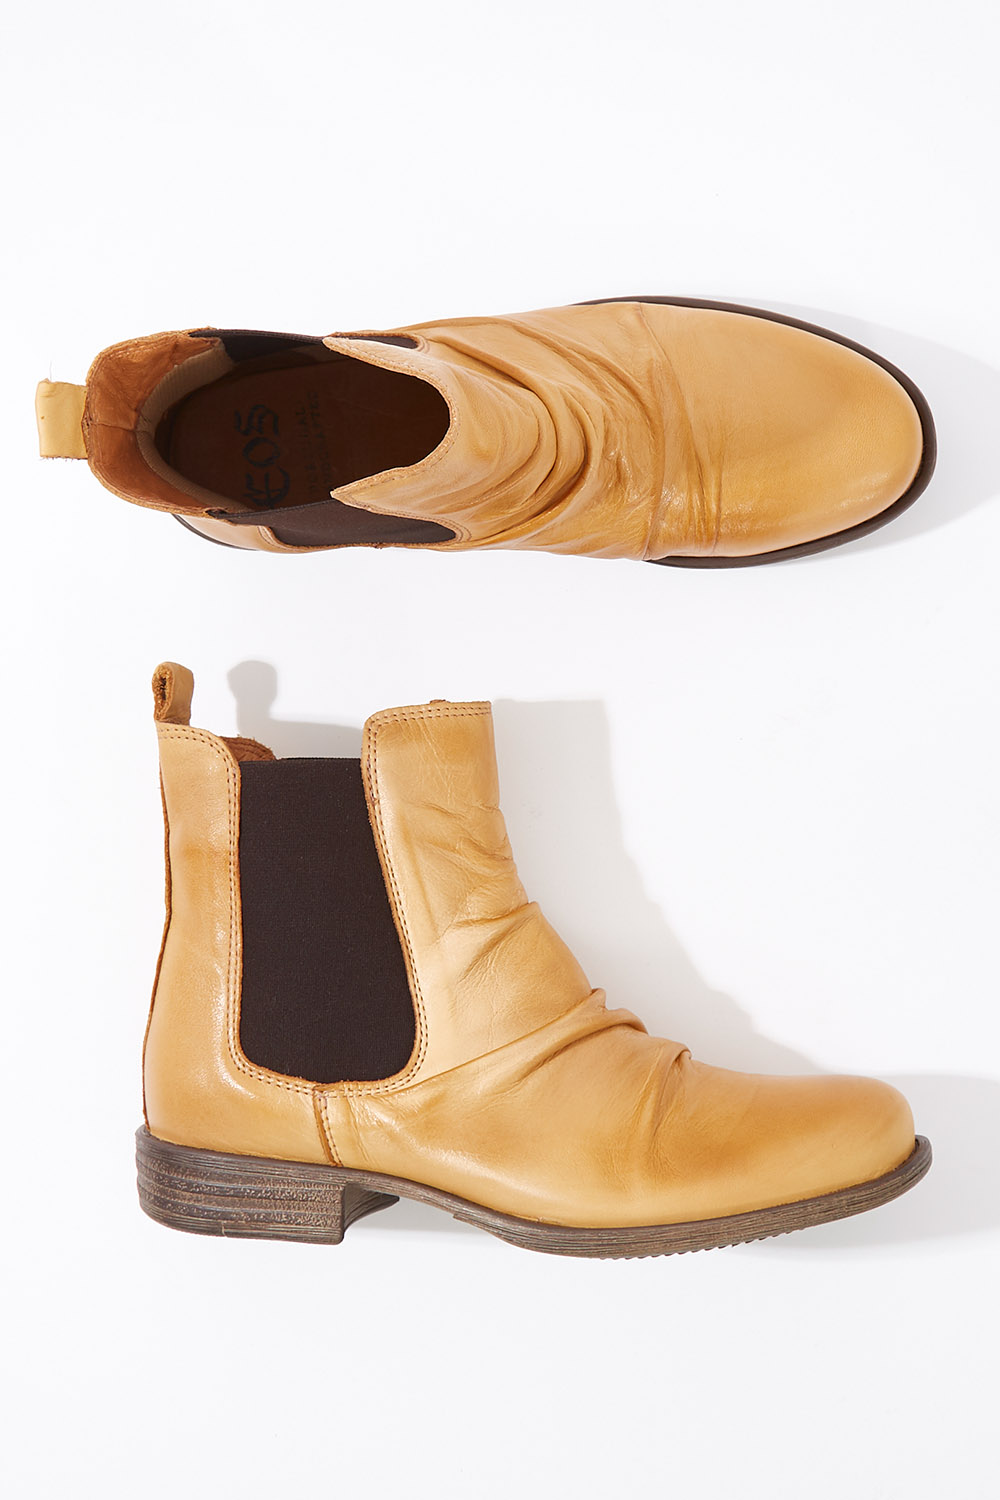 EOS Willow Ankle Boot - Womens Boots